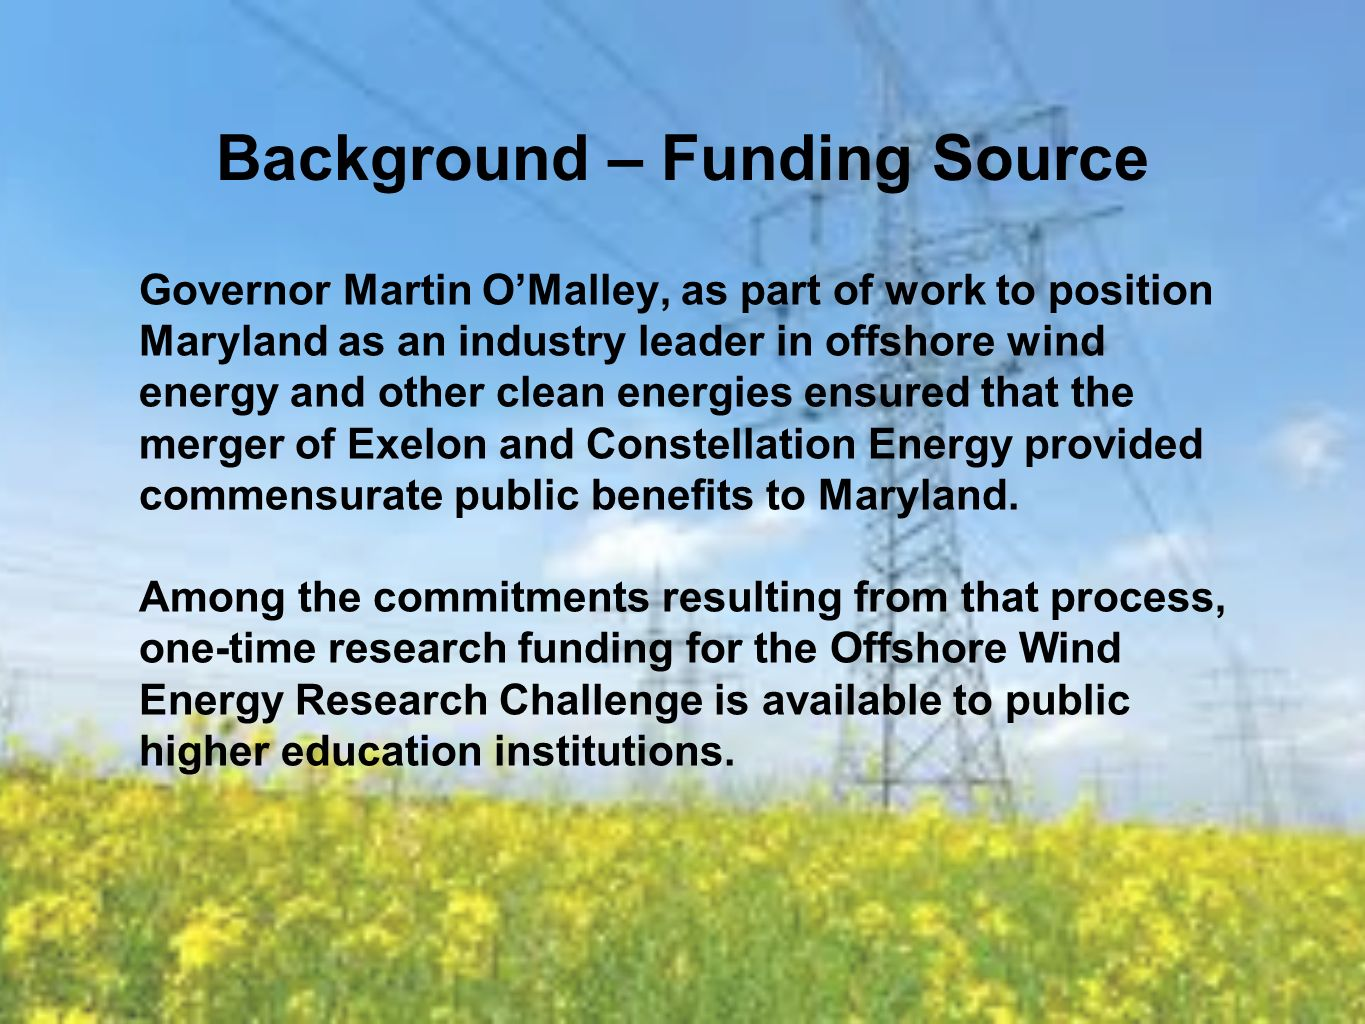 Background – Funding Source Governor Martin OMalley, as part of work to position Maryland as an industry leader in offshore wind energy and other clean energies ensured that the merger of Exelon and Constellation Energy provided commensurate public benefits to Maryland.